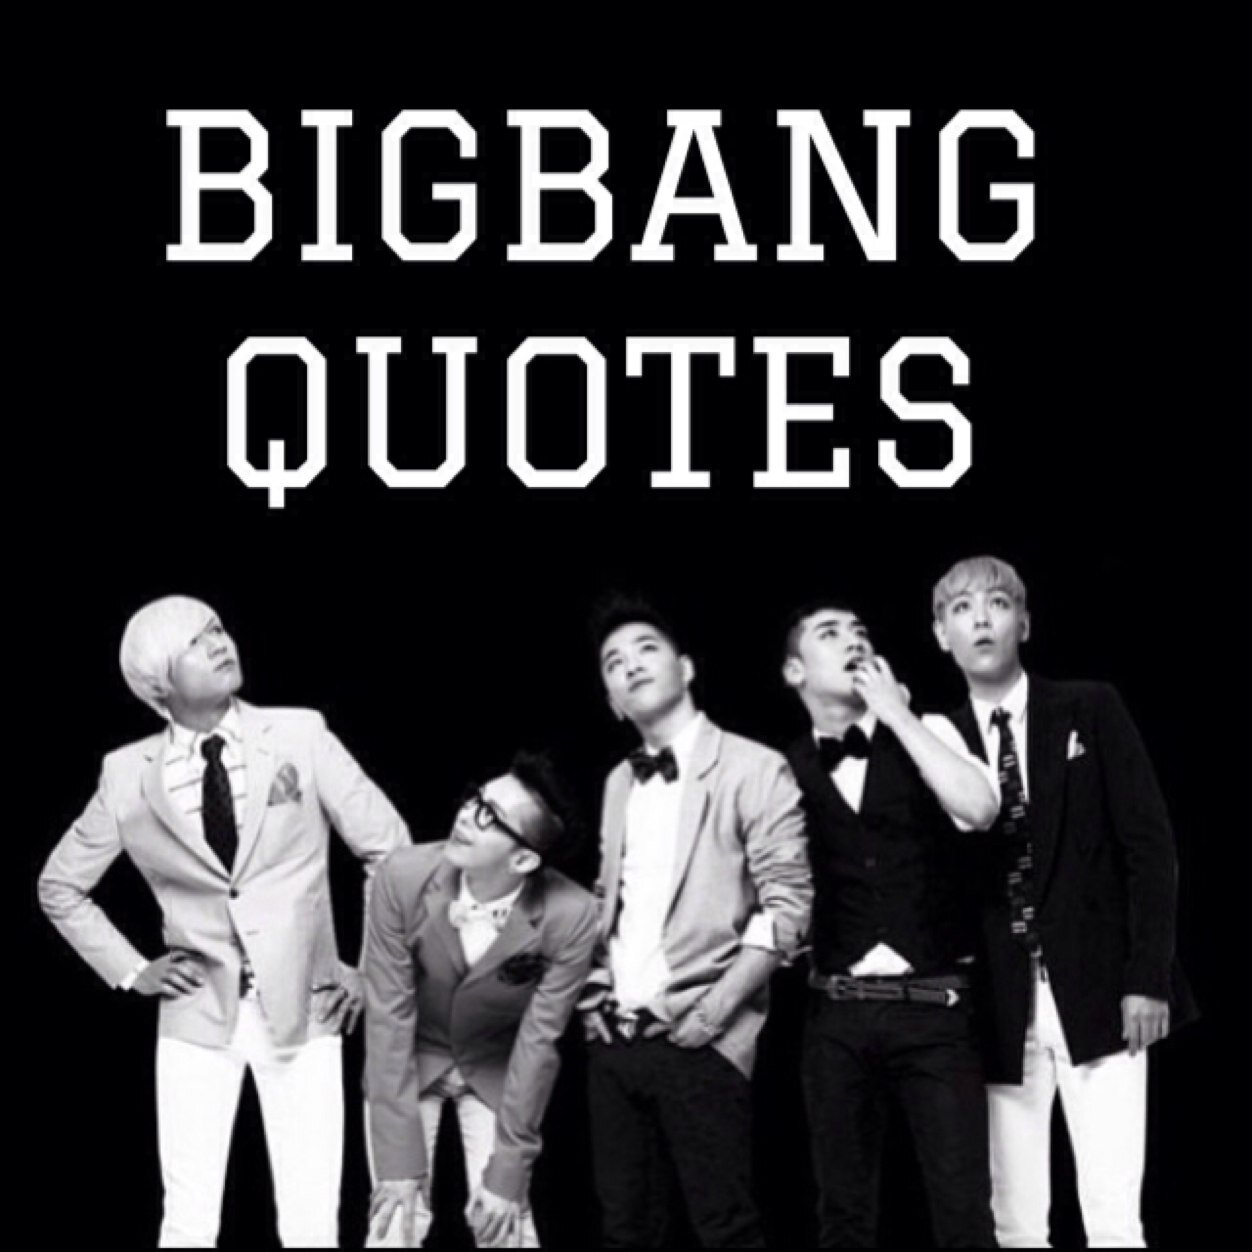 seungri and gd relationship quotes